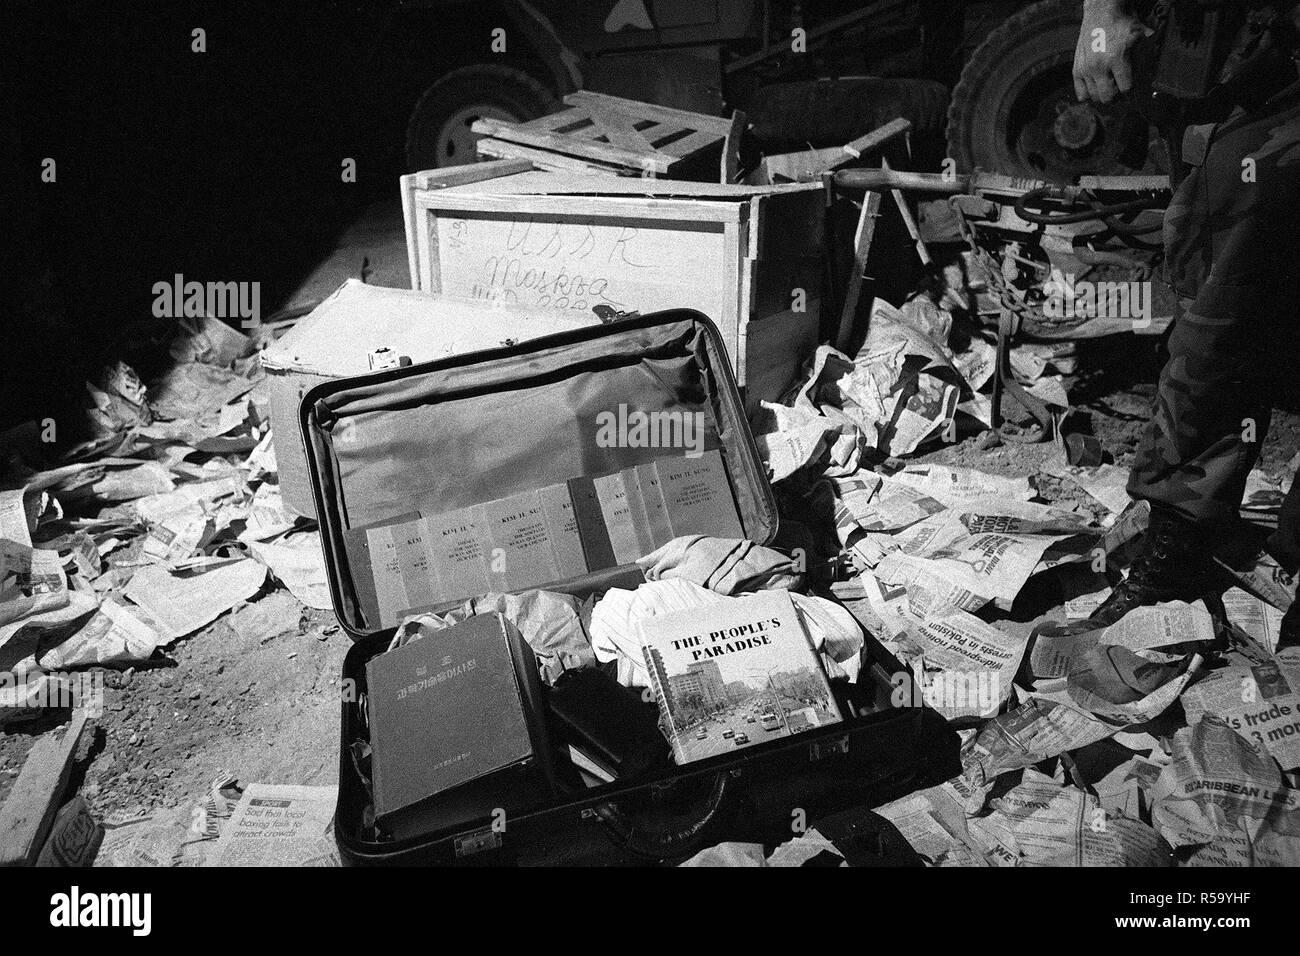 Communist literature was found in a suitcase seized during the multiservice, multinational Operation URGENT FURY. - Stock Image